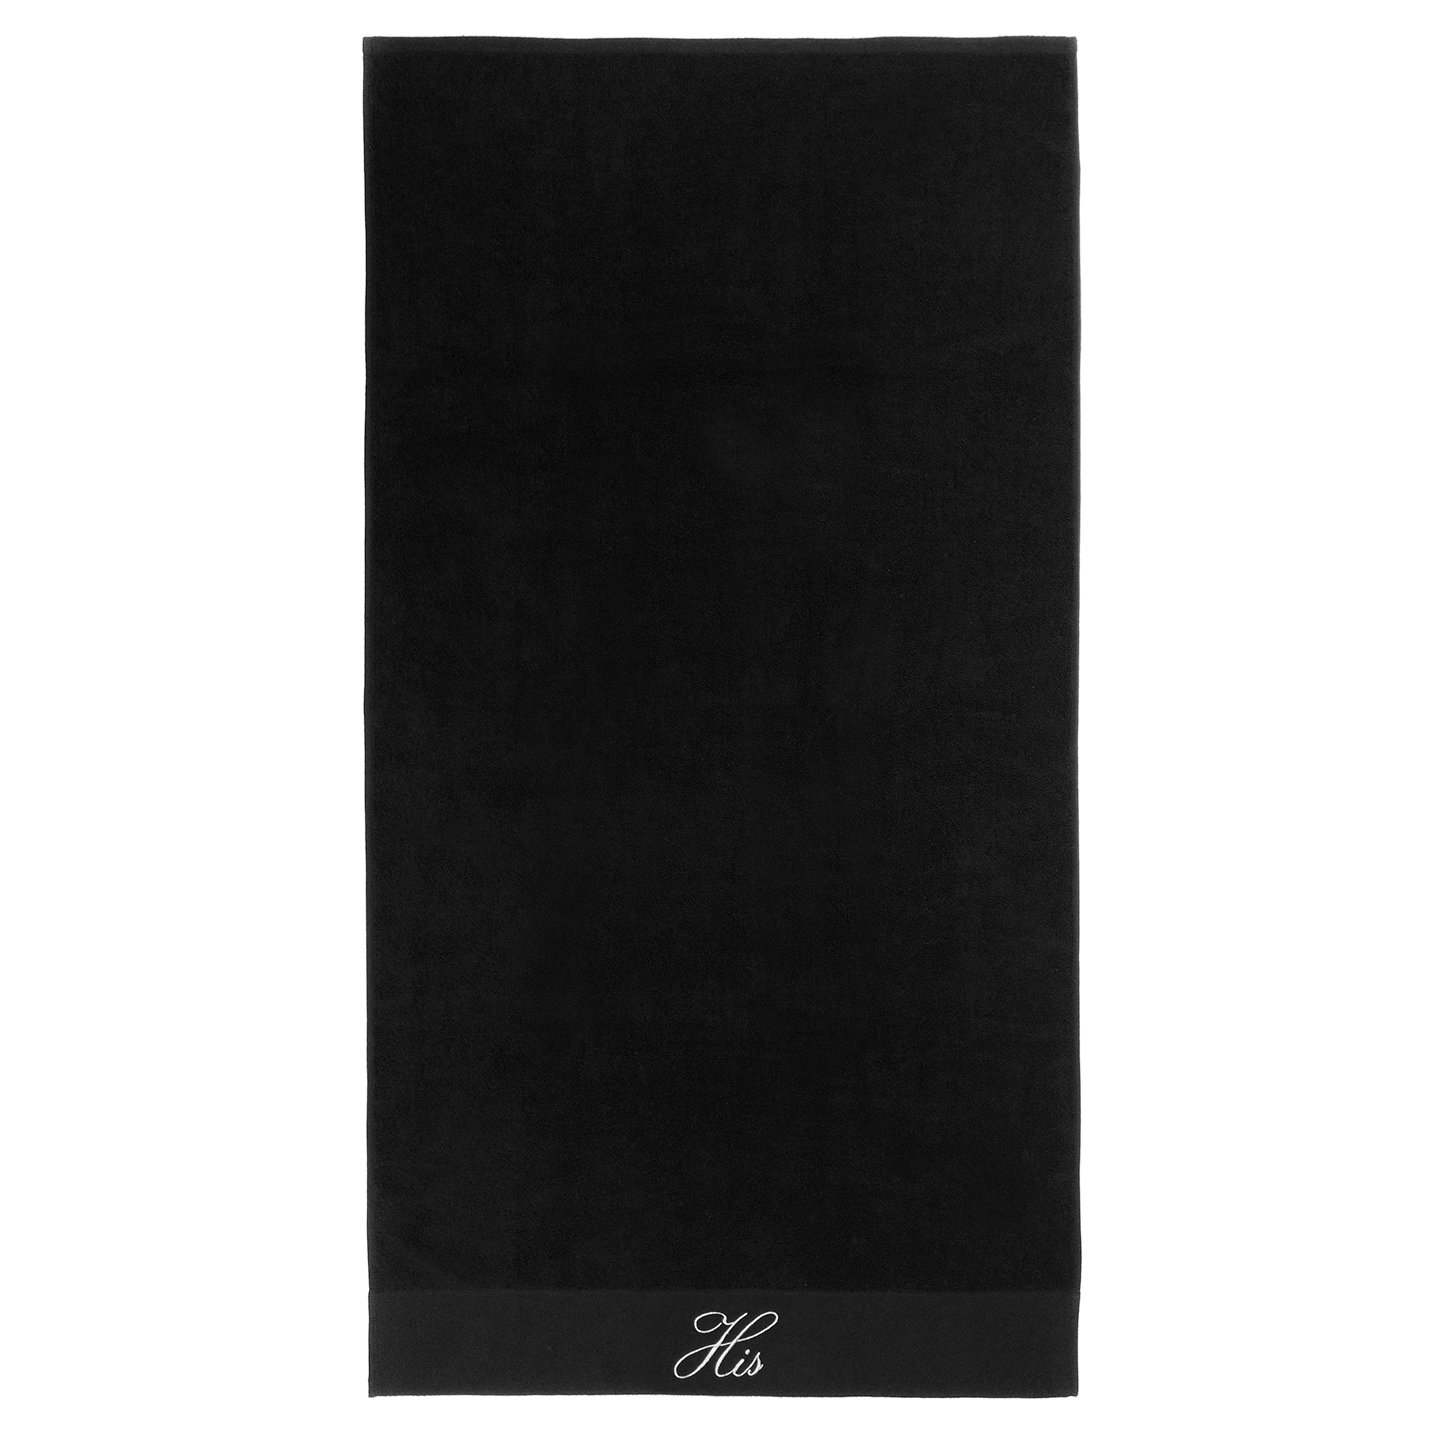 Kaufman - Terry Cloth Bathrobes 100% Cotton - His and Hers Embroidered Velour Shawl Set of Robes with His and Hers Black Towel Set 30''x58'' 4-PK by Ben Kaufman Sales (Image #5)